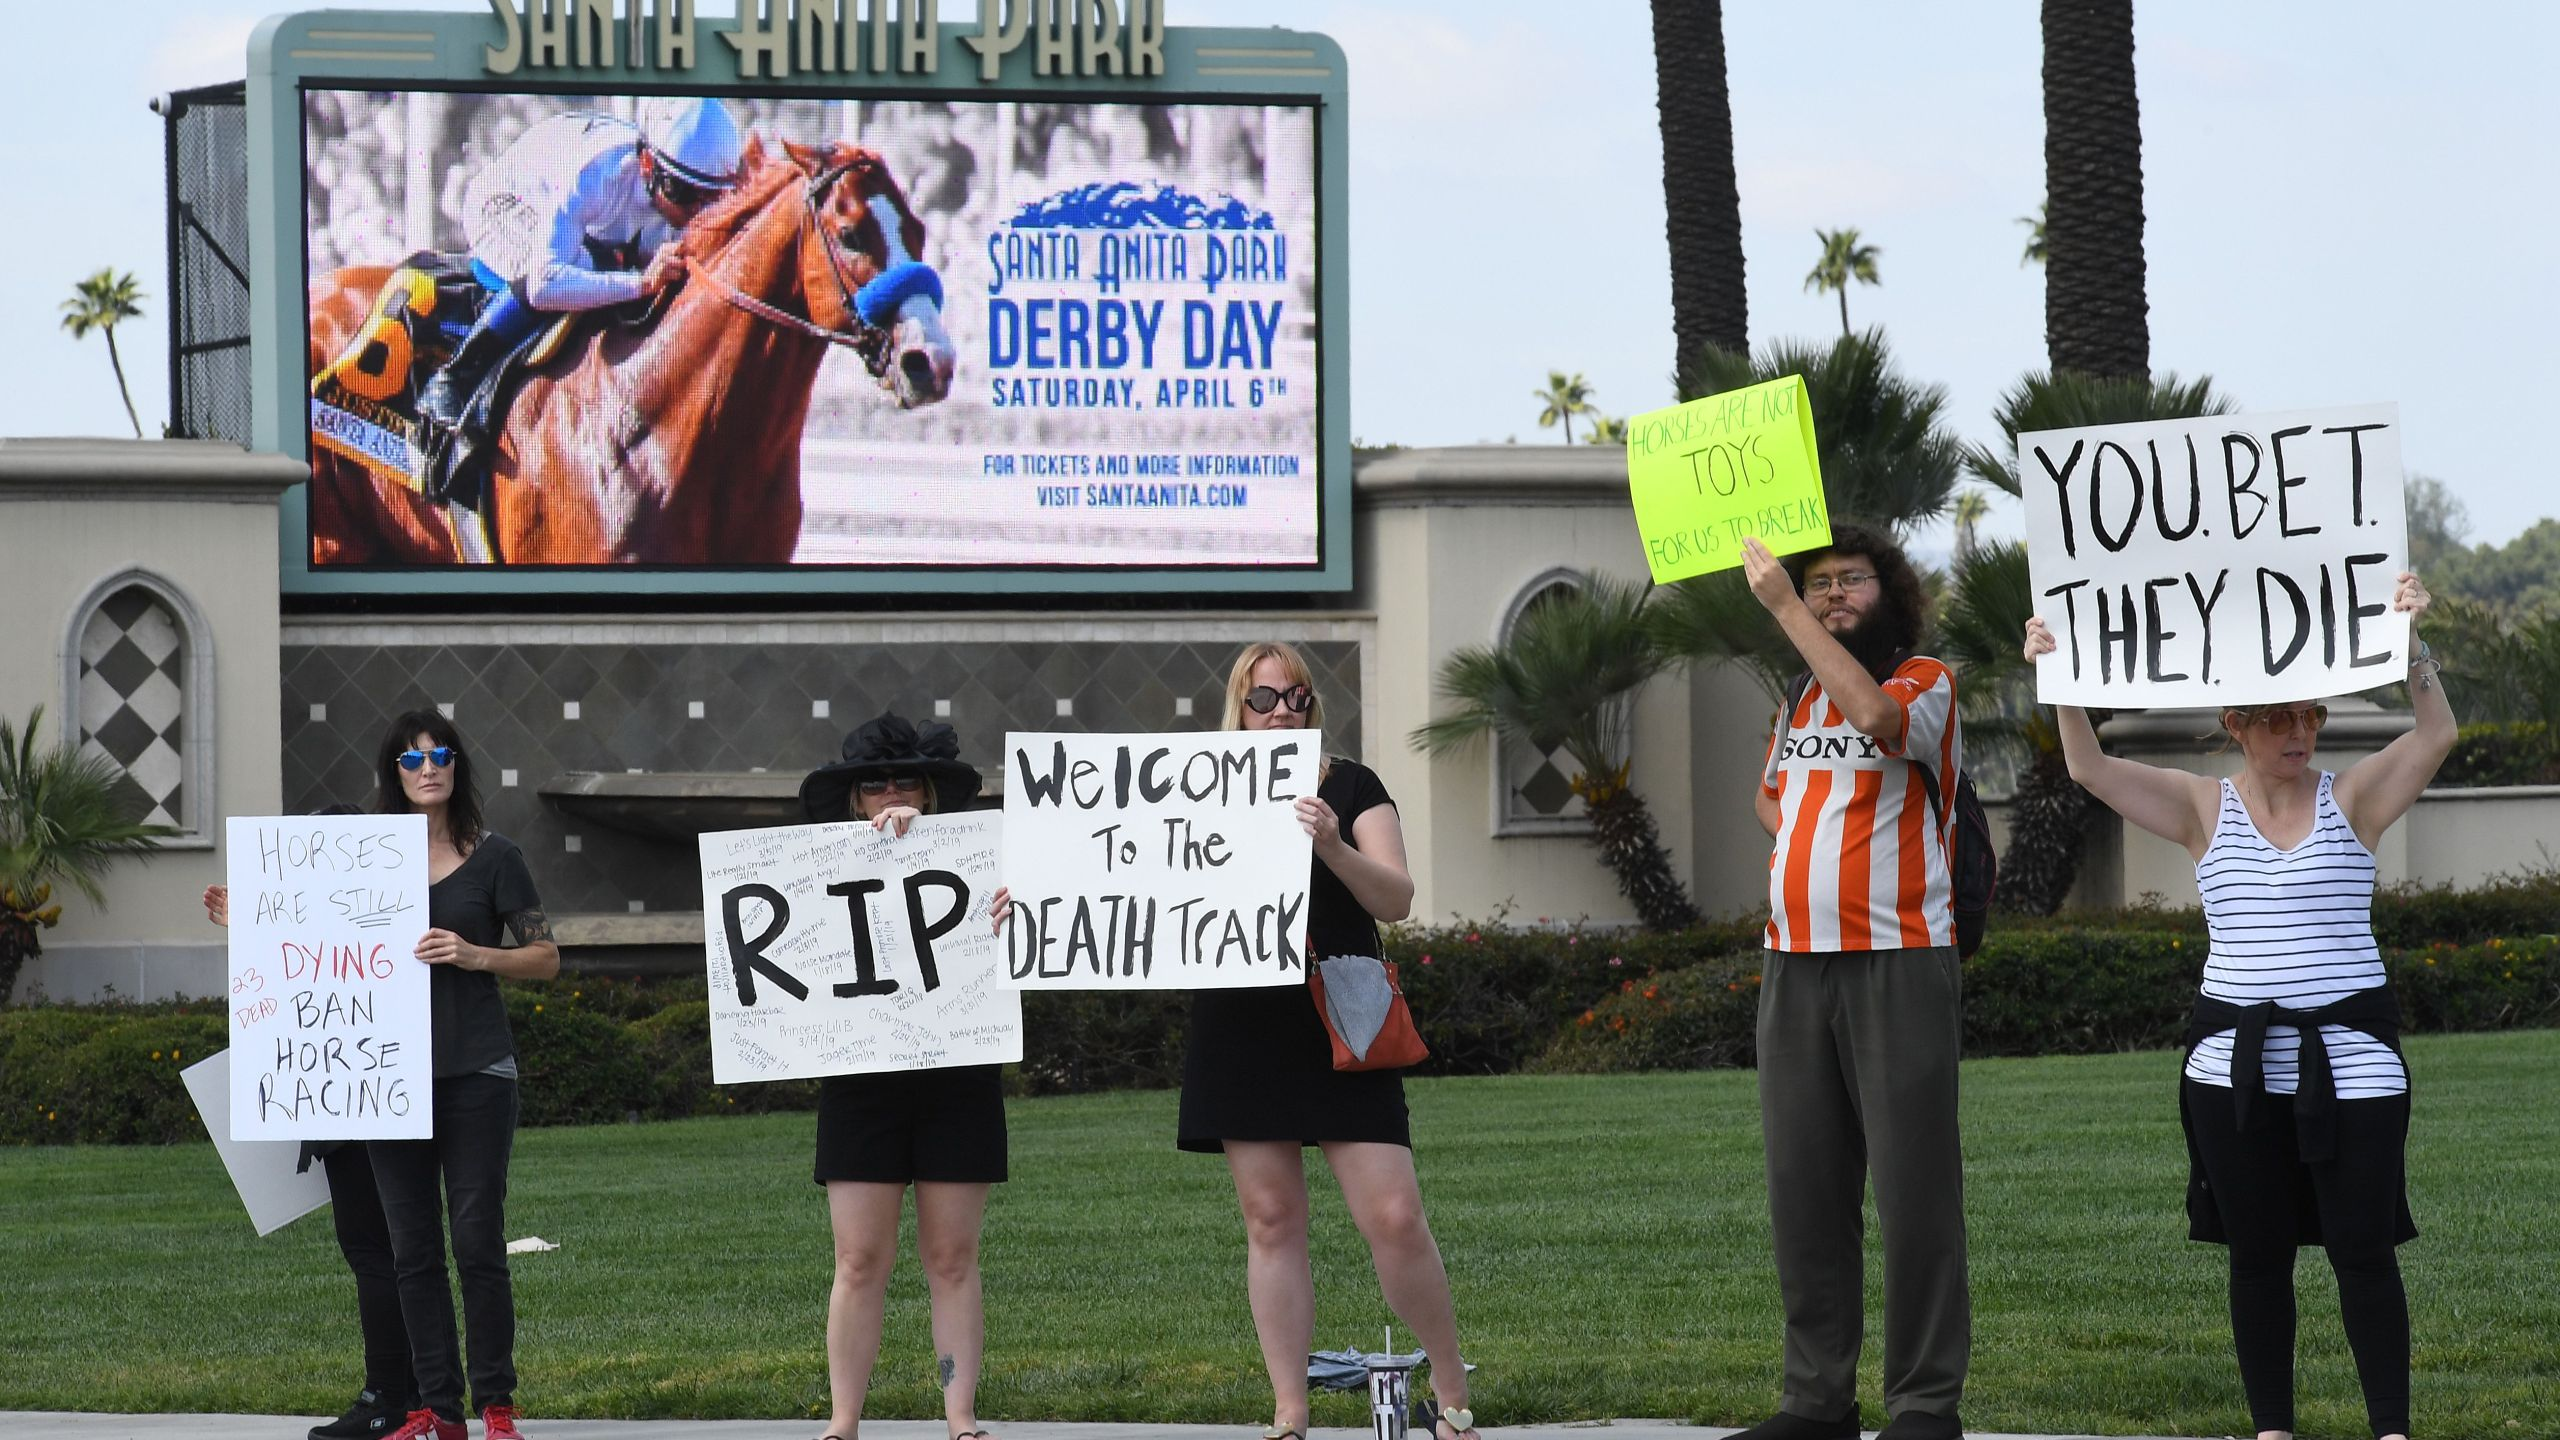 Animal-rights advocates protest the deaths of 23 racehorses since Dec. 26 at Santa Anita Park in Arcadia on April 6, 2019. (Credit: Mark Ralston / AFP / Getty Images)